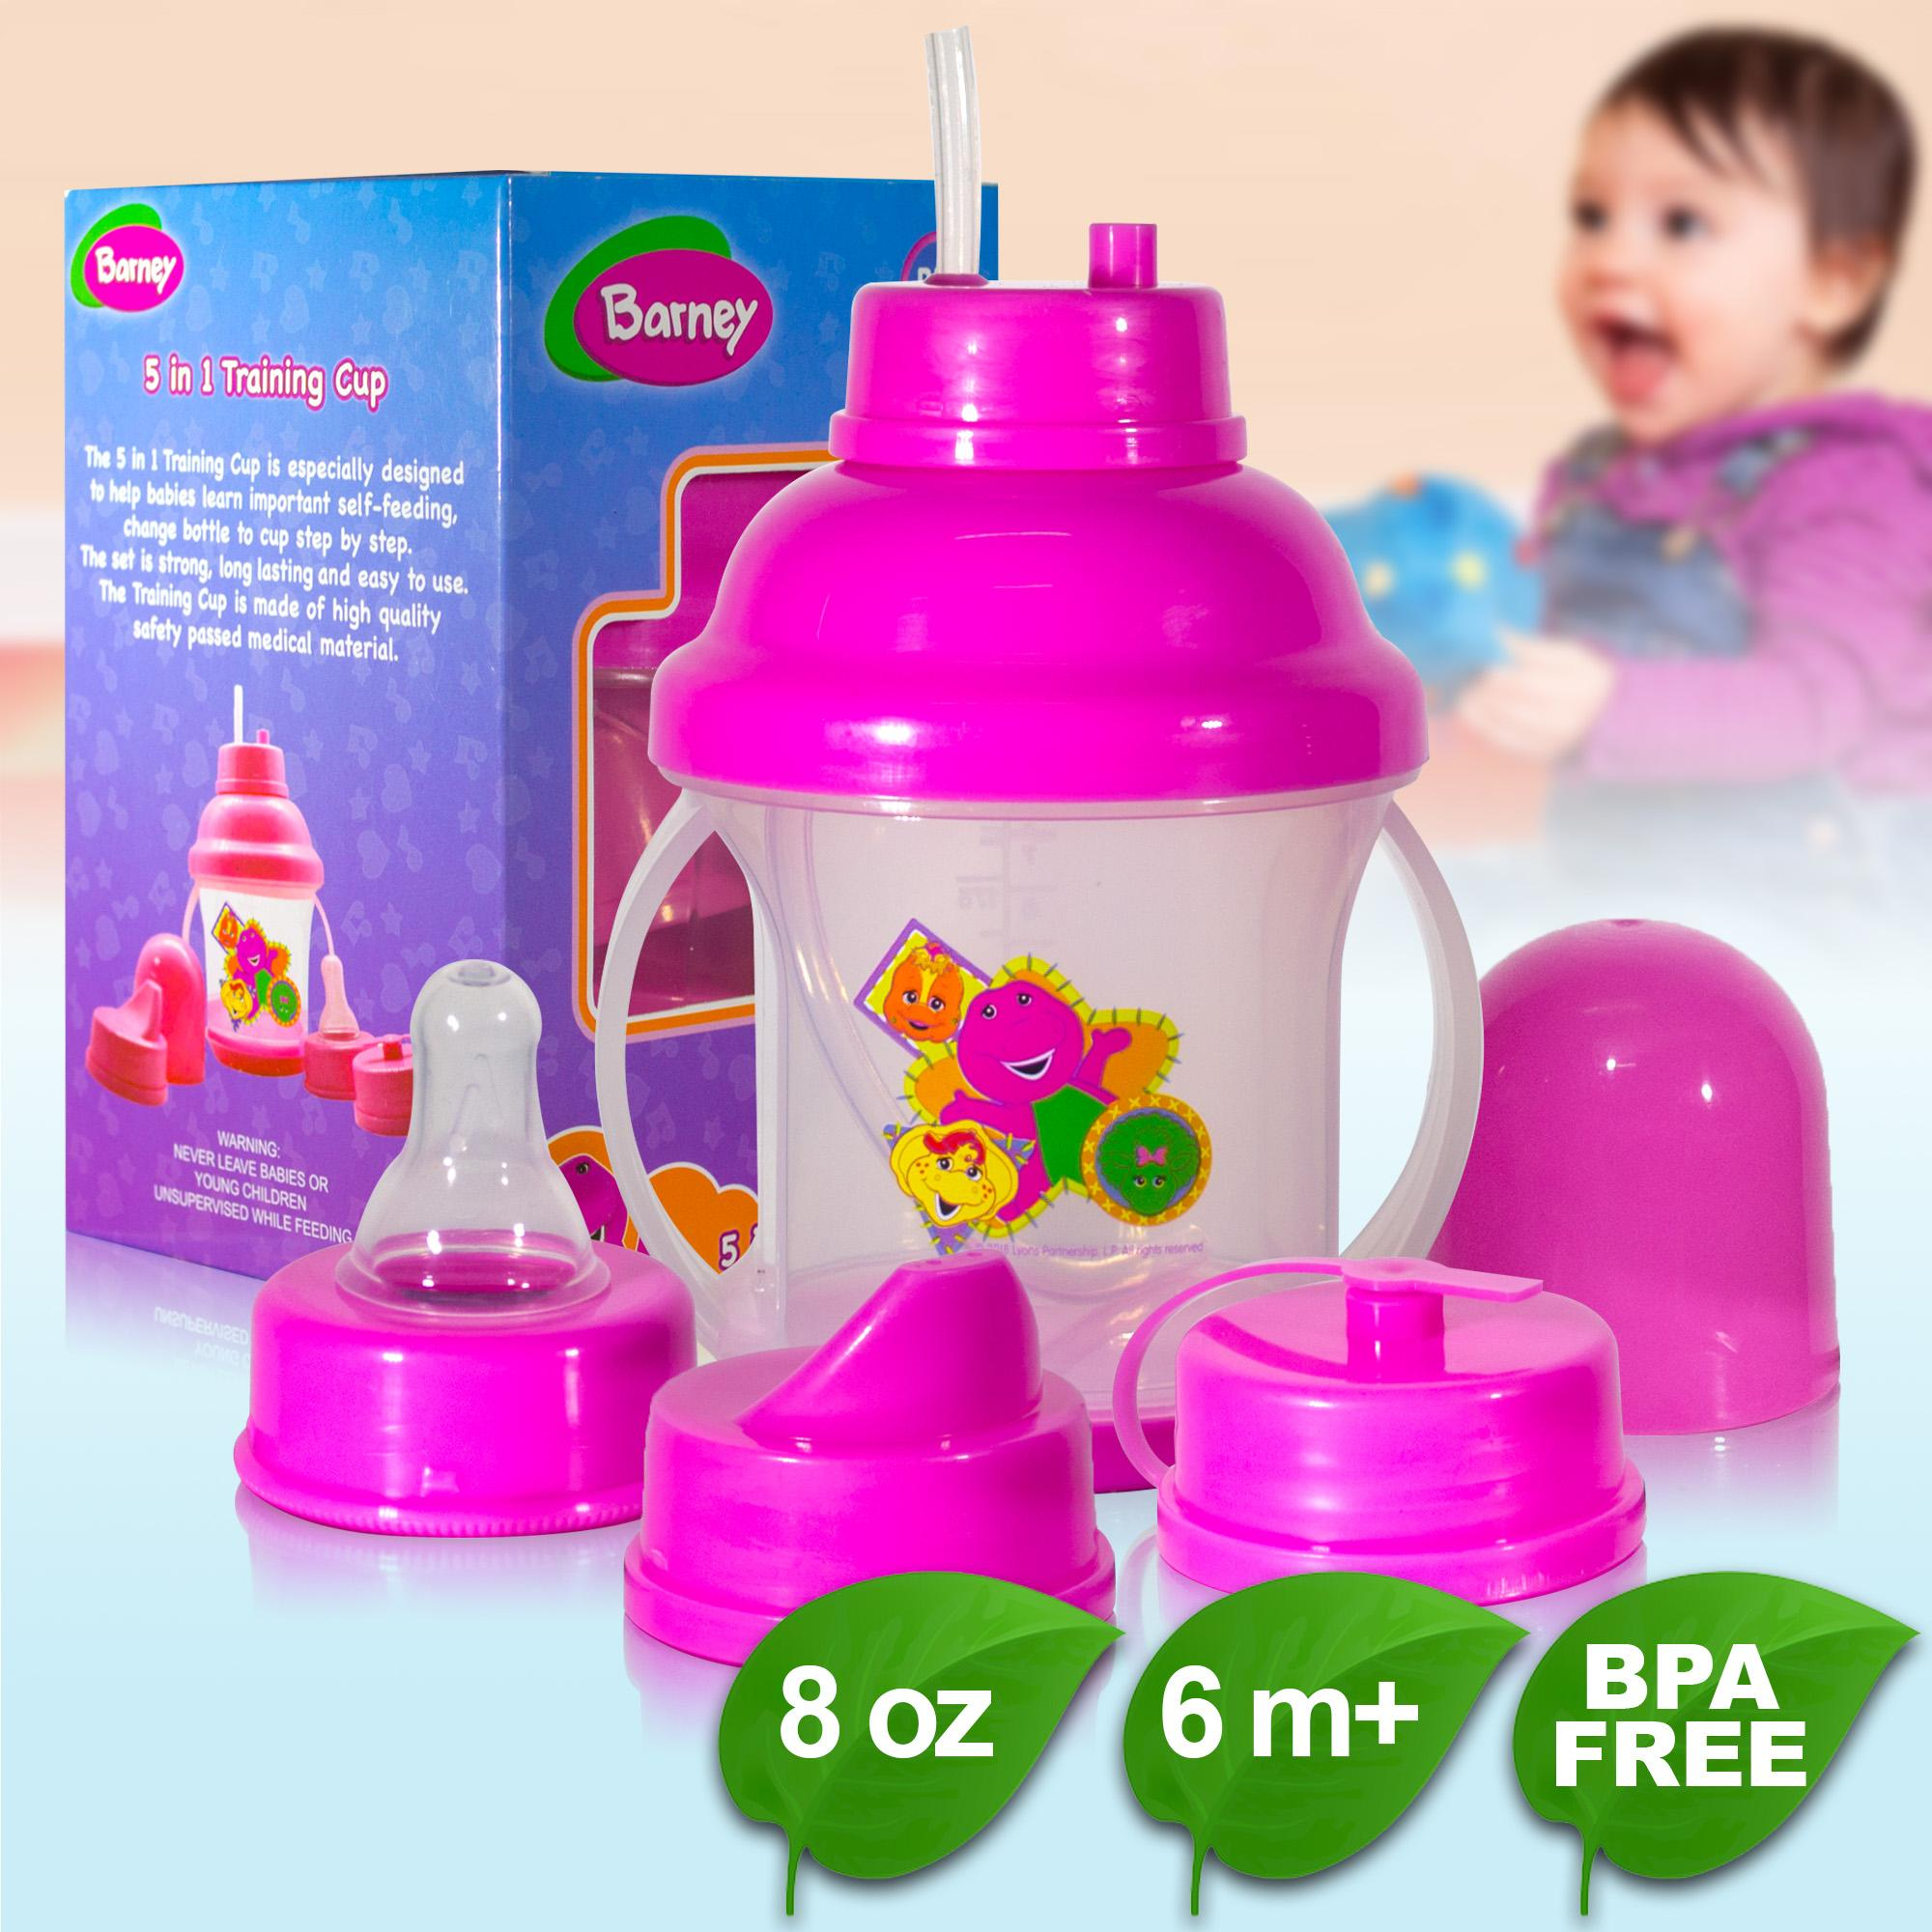 BPA FREE Barney 5 in 1 Training Cup